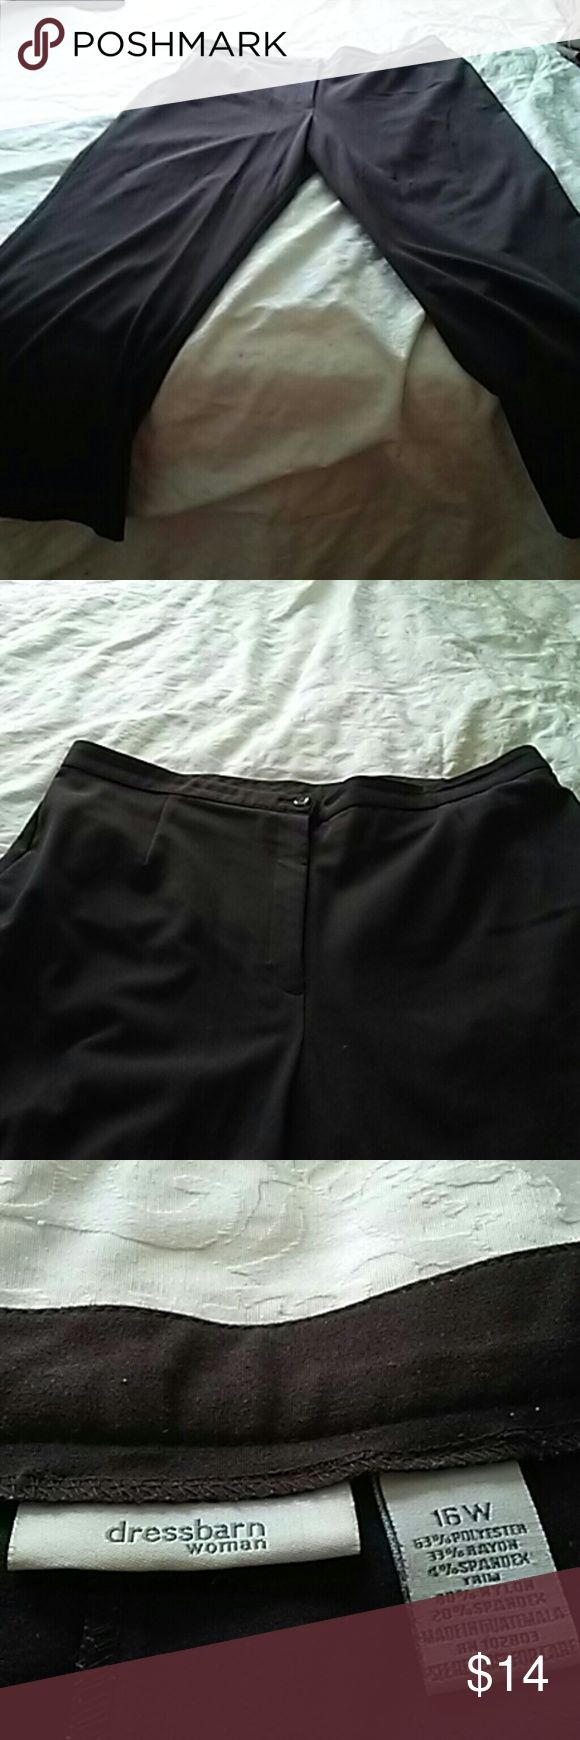 Dress Barn slacks Dark brown slacks, pleated no pockets. Please see last picture there are 2 pin size holes in the hem of the left hem. Unnoticeable however wanted to disclose. Pants are long if you are normal or petite you could have hemmed an that would take care of it. Dress Barn Pants Trousers